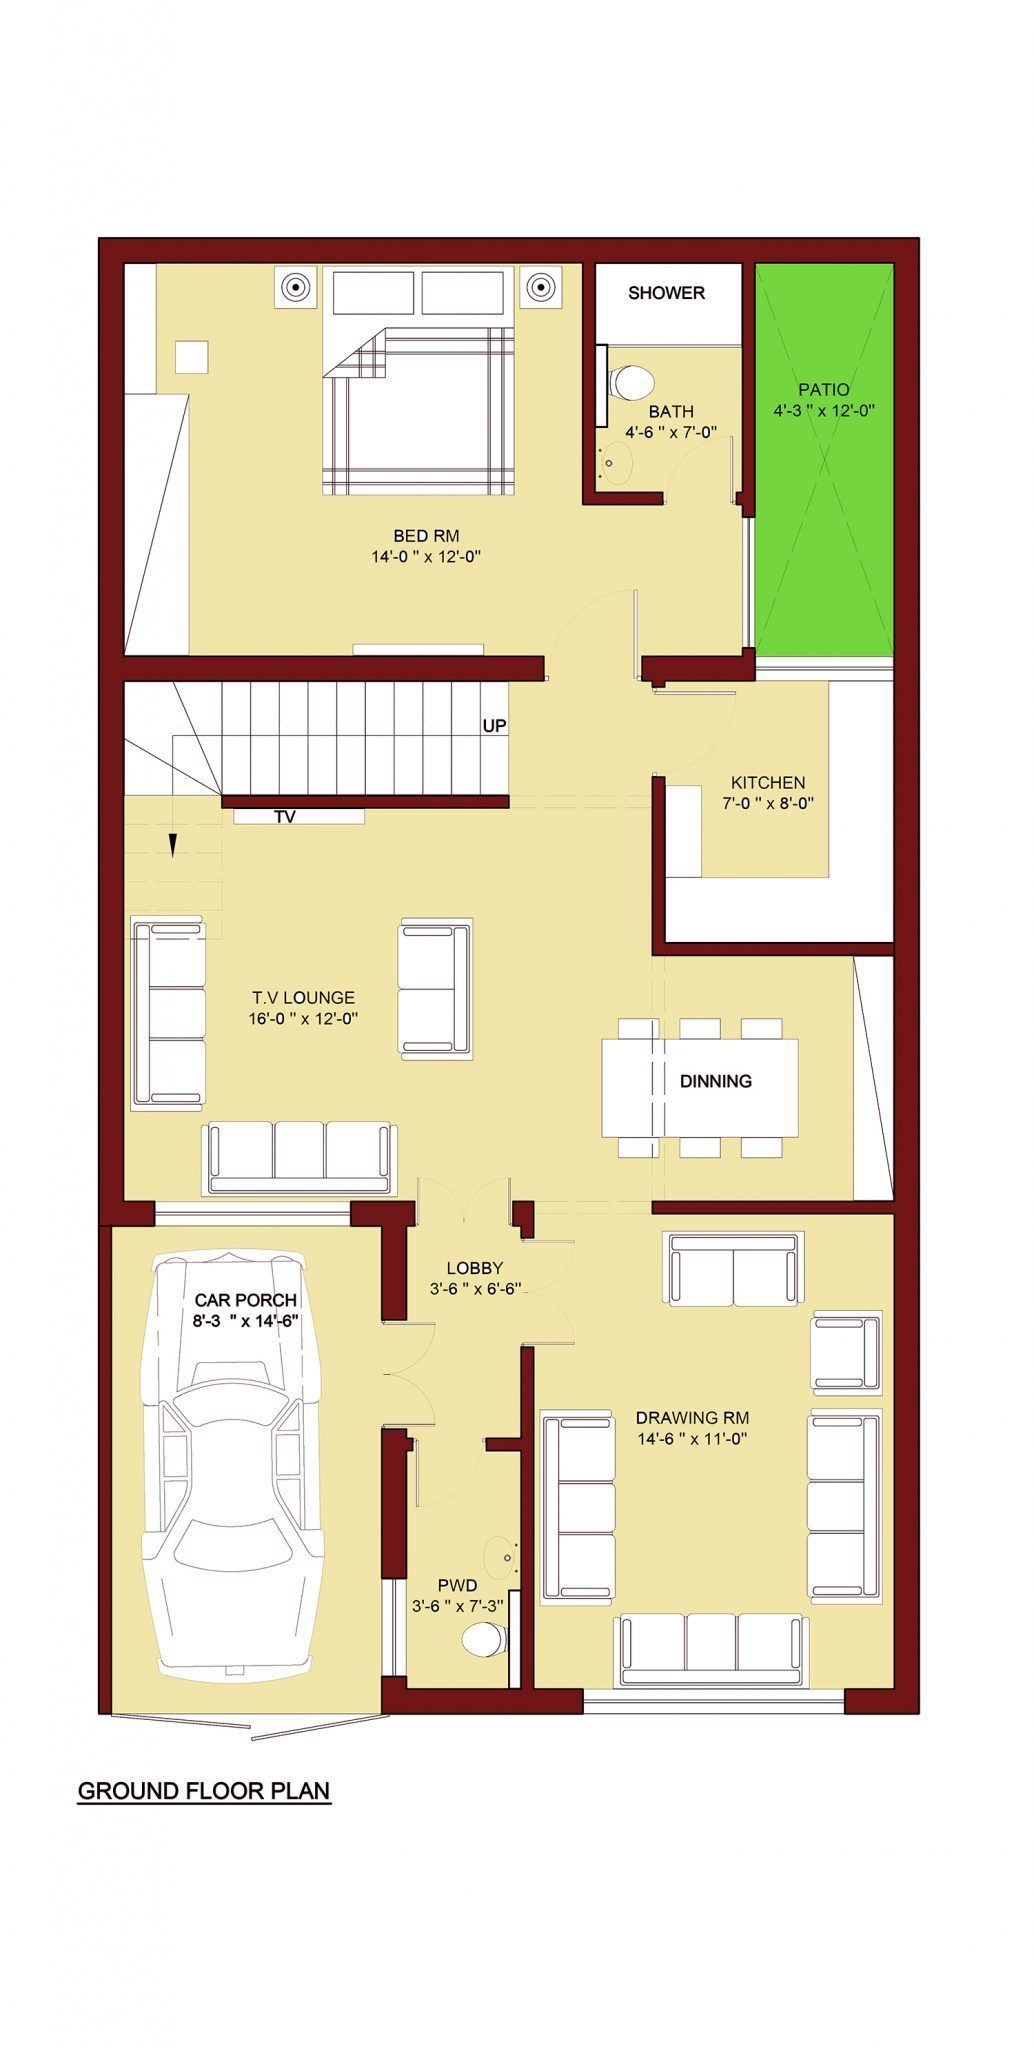 Groovy House Floor Plan House Plan House Plans Bedroom House Interior Design Ideas Tzicisoteloinfo